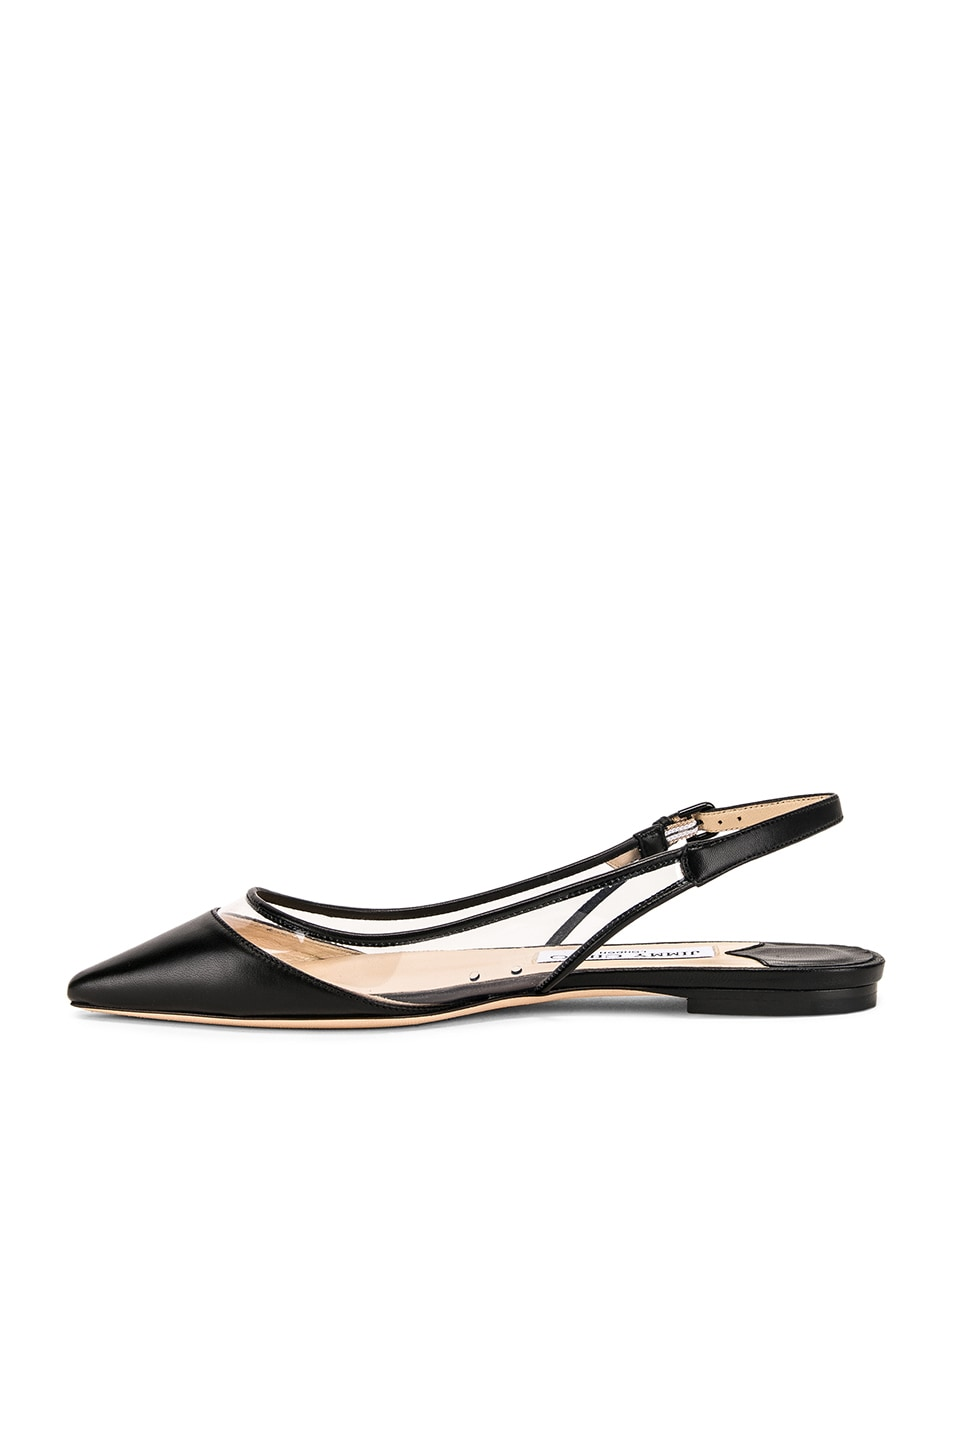 Image 5 of Jimmy Choo Erin Leather Plexi Flat in Black & PVC